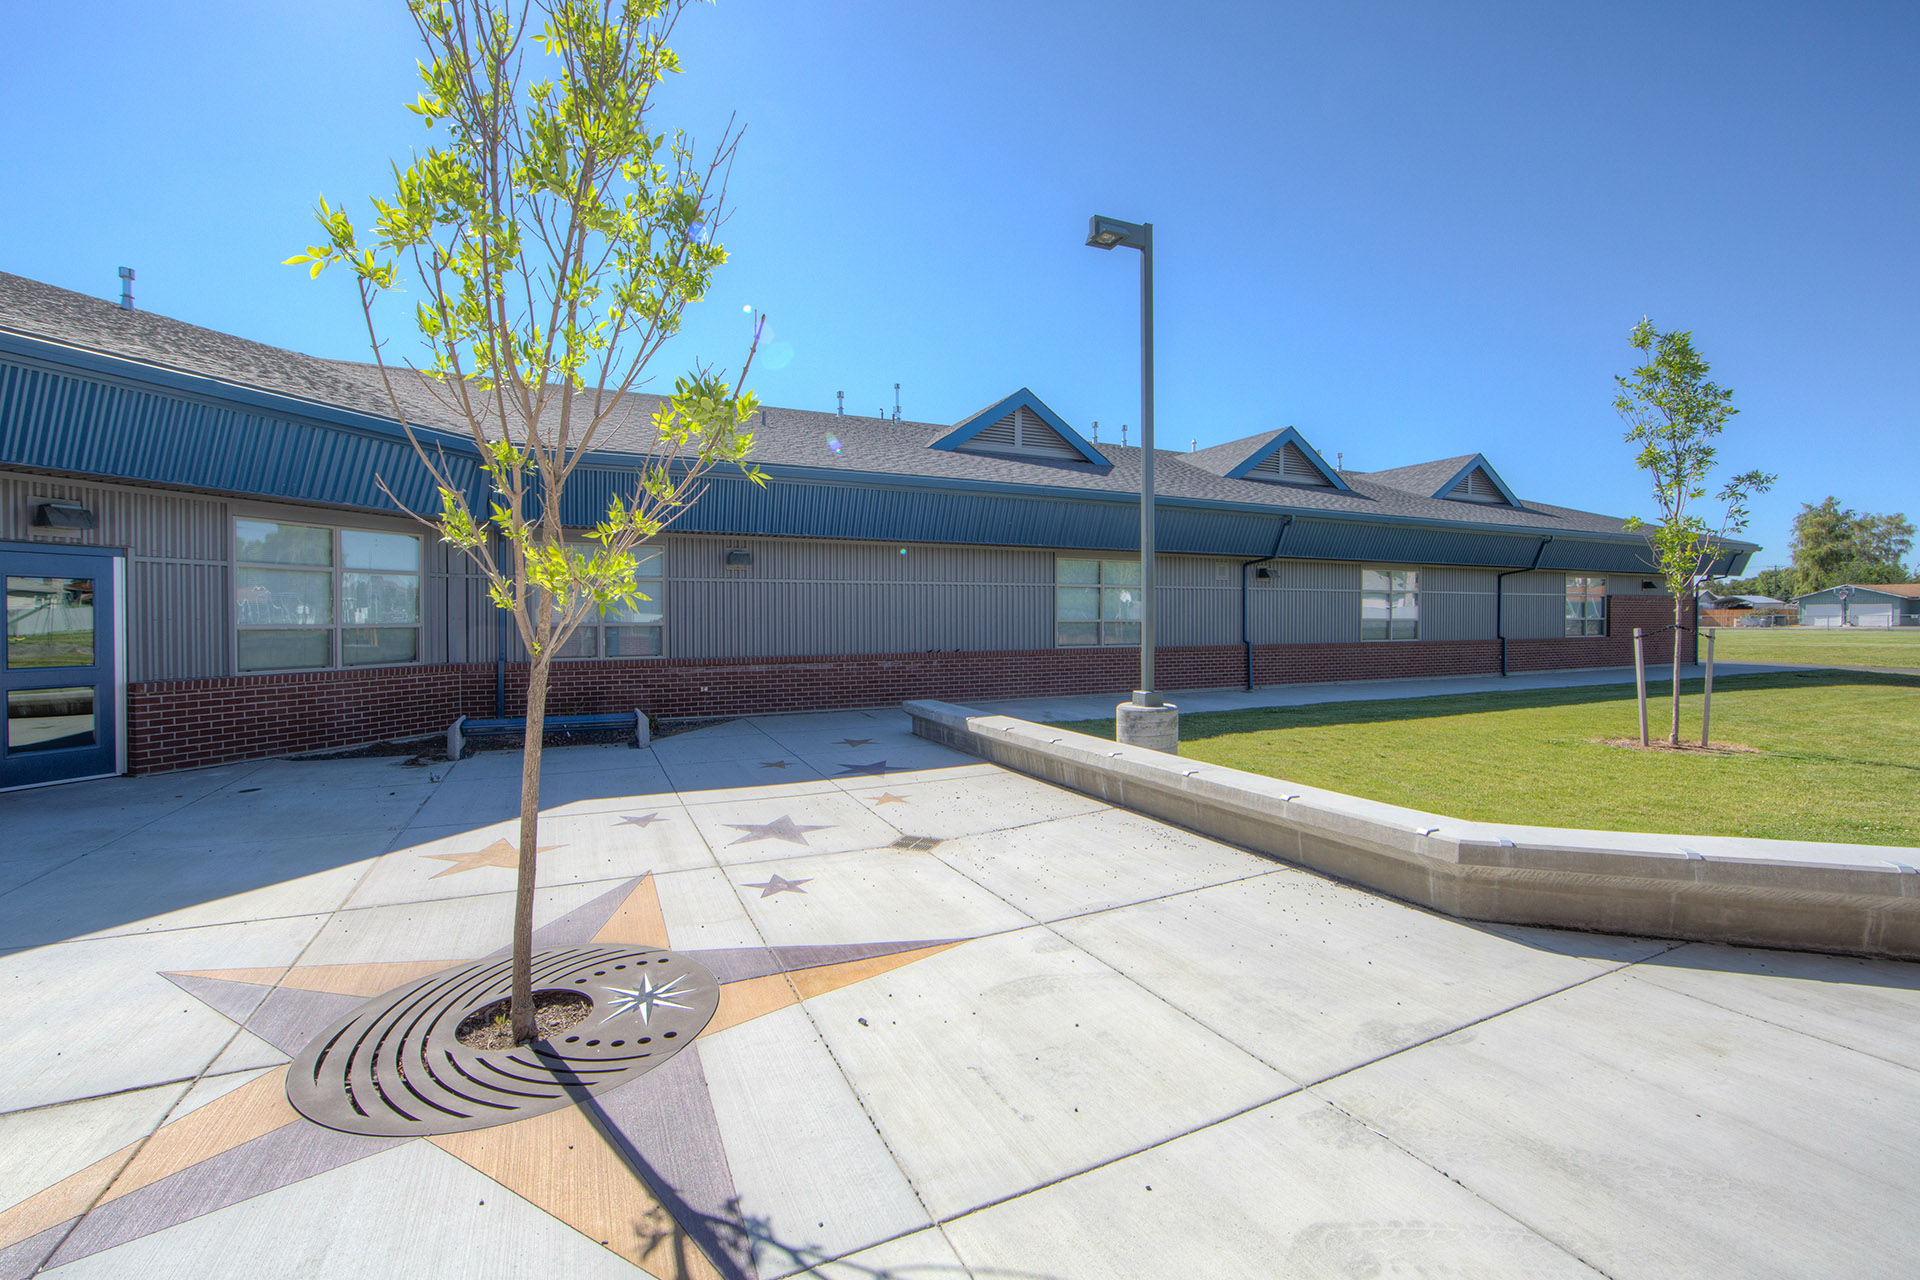 Scootney Springs Elementary Courtyard